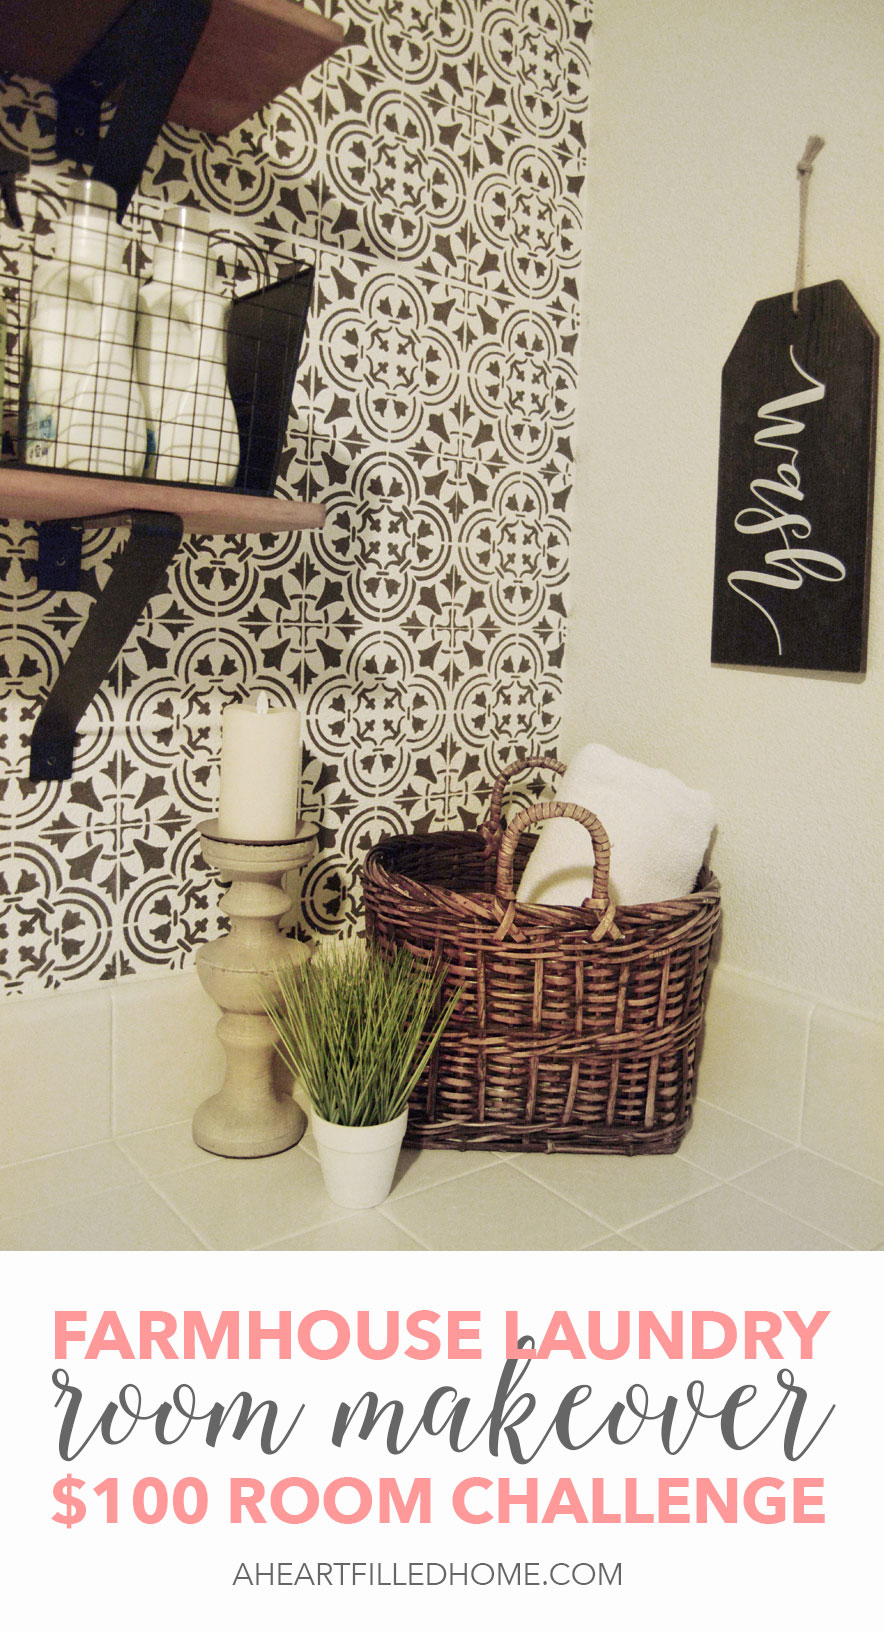 Modern farmhouse laundry room makeover for only $100!